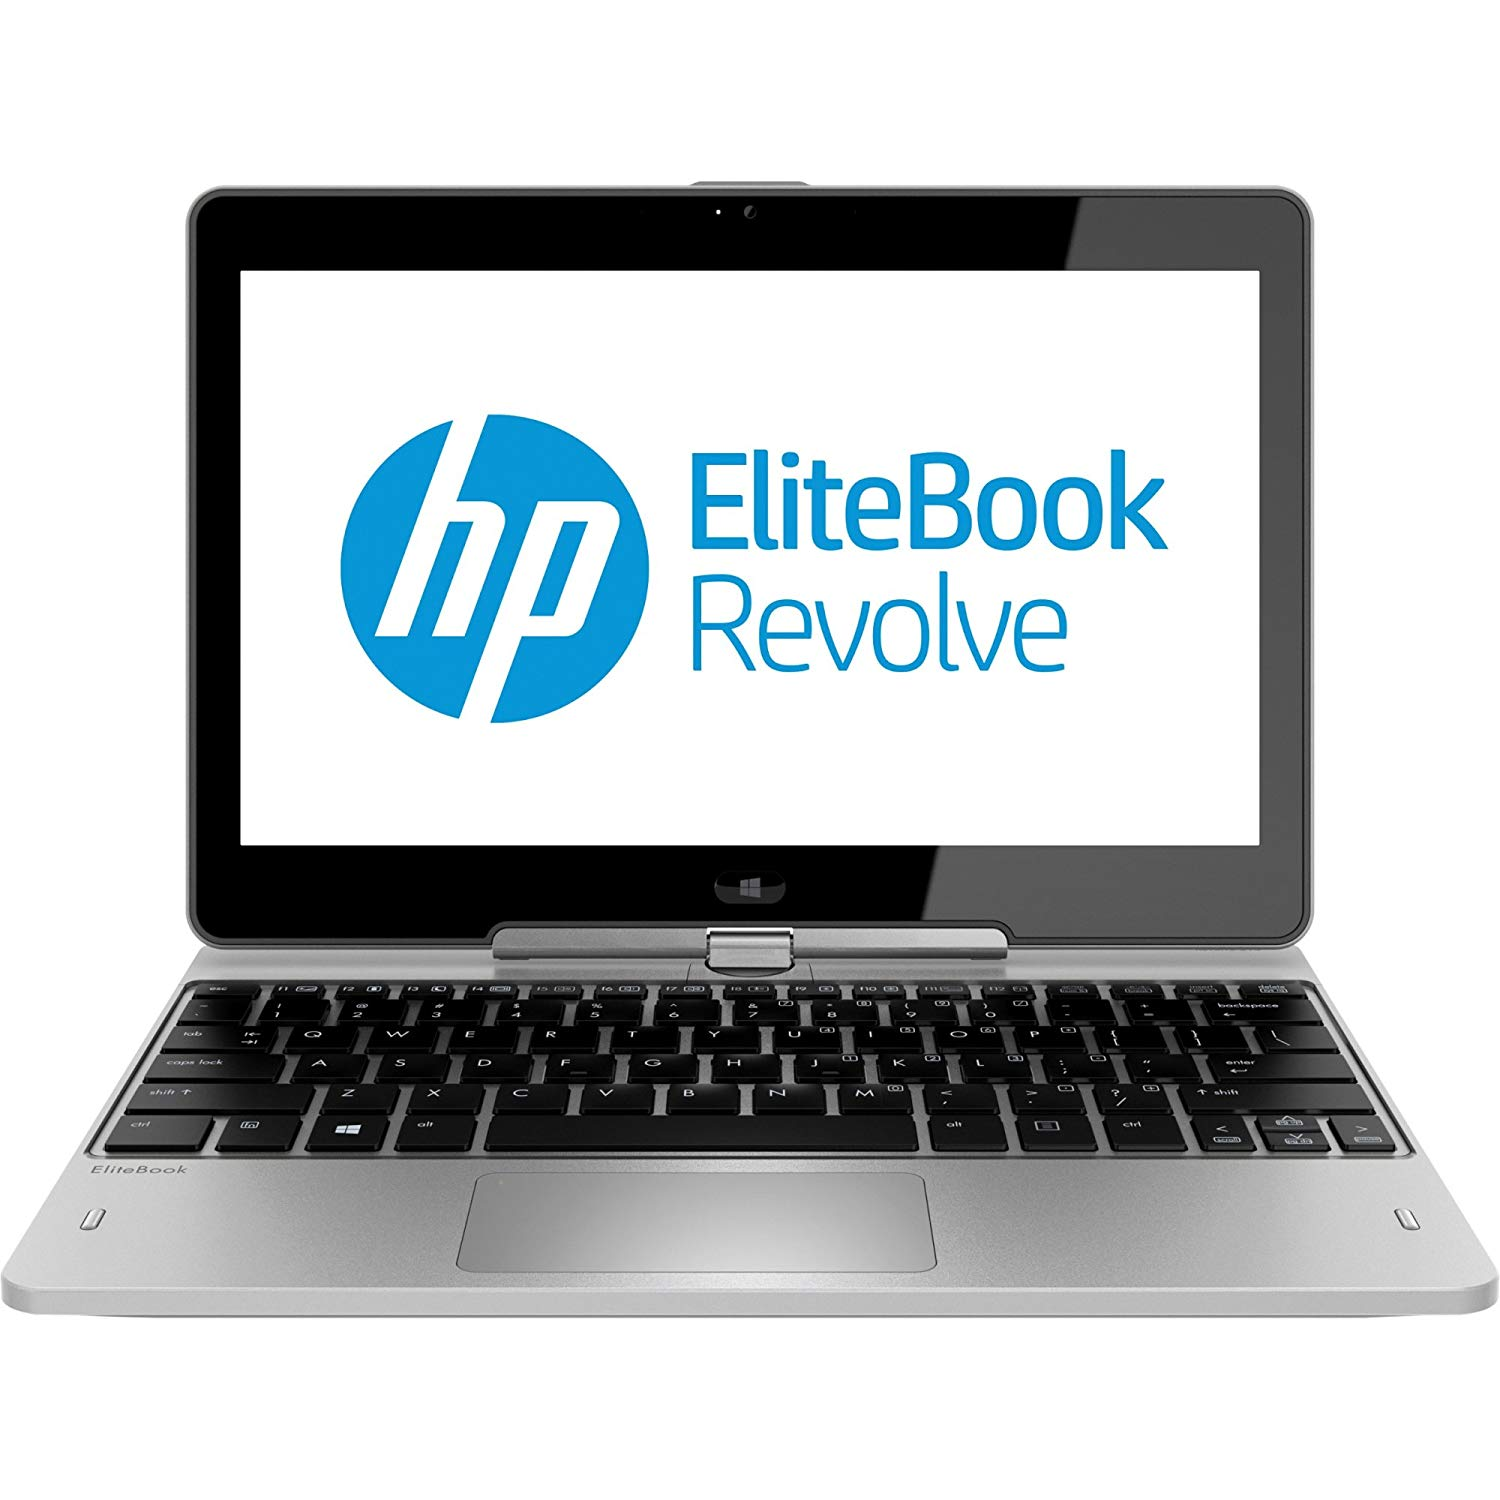 "HP Elitebook Revolve 810 G2 11.6"" Refurbished Laptop - Intel Core i3 4010U 4th Gen 1.70 GHz 4GB 256GB SSD Windows 10 Home 64-Bit - Webcam, Touchscreen"